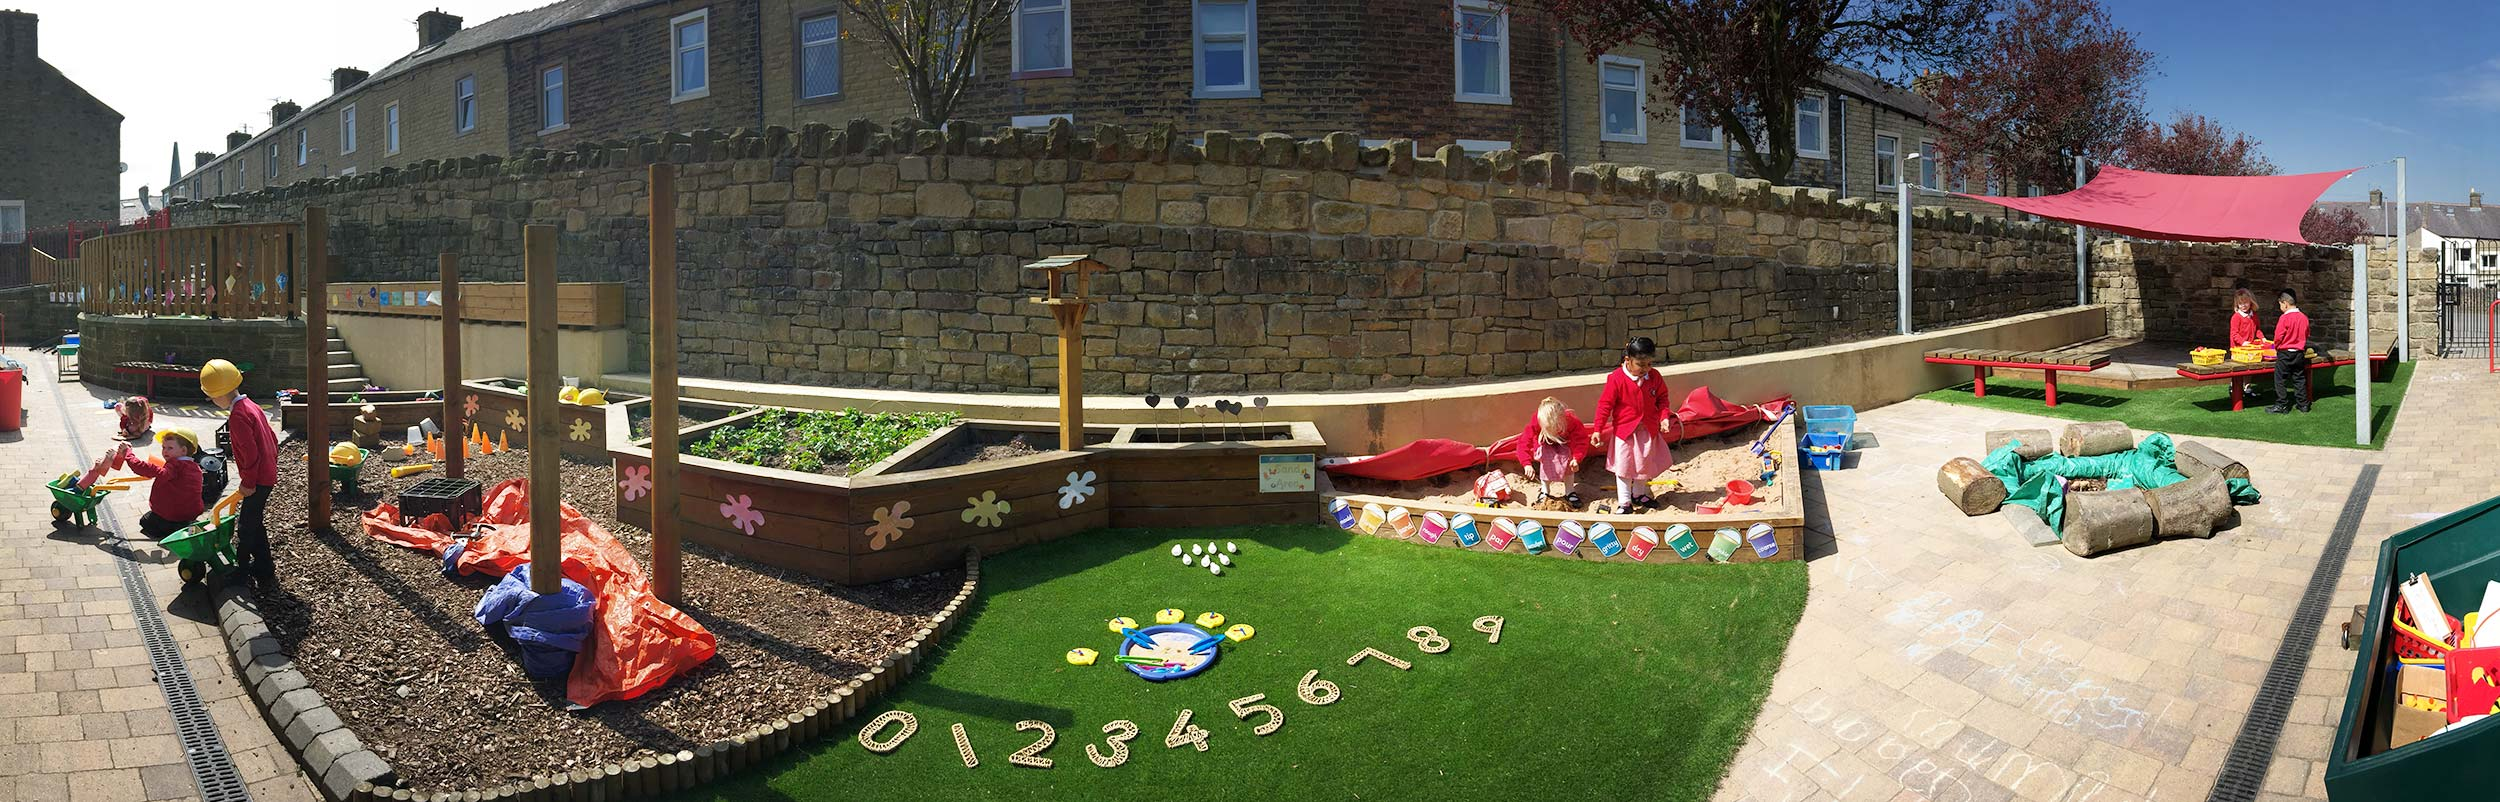 early years outdoor area panorama